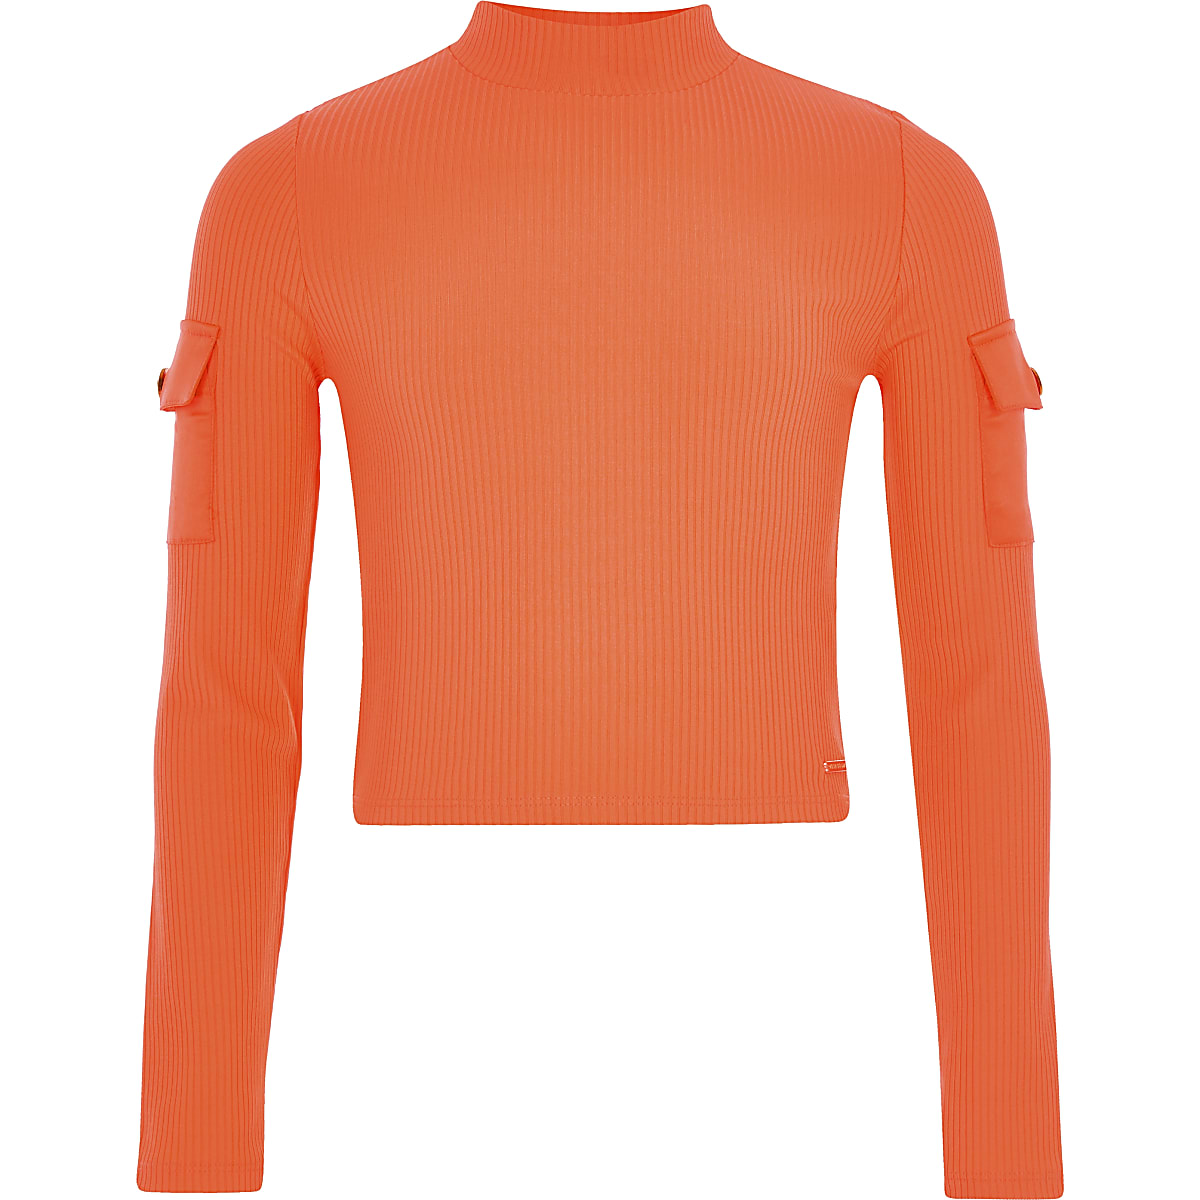 Girls neon orange high neck utility top